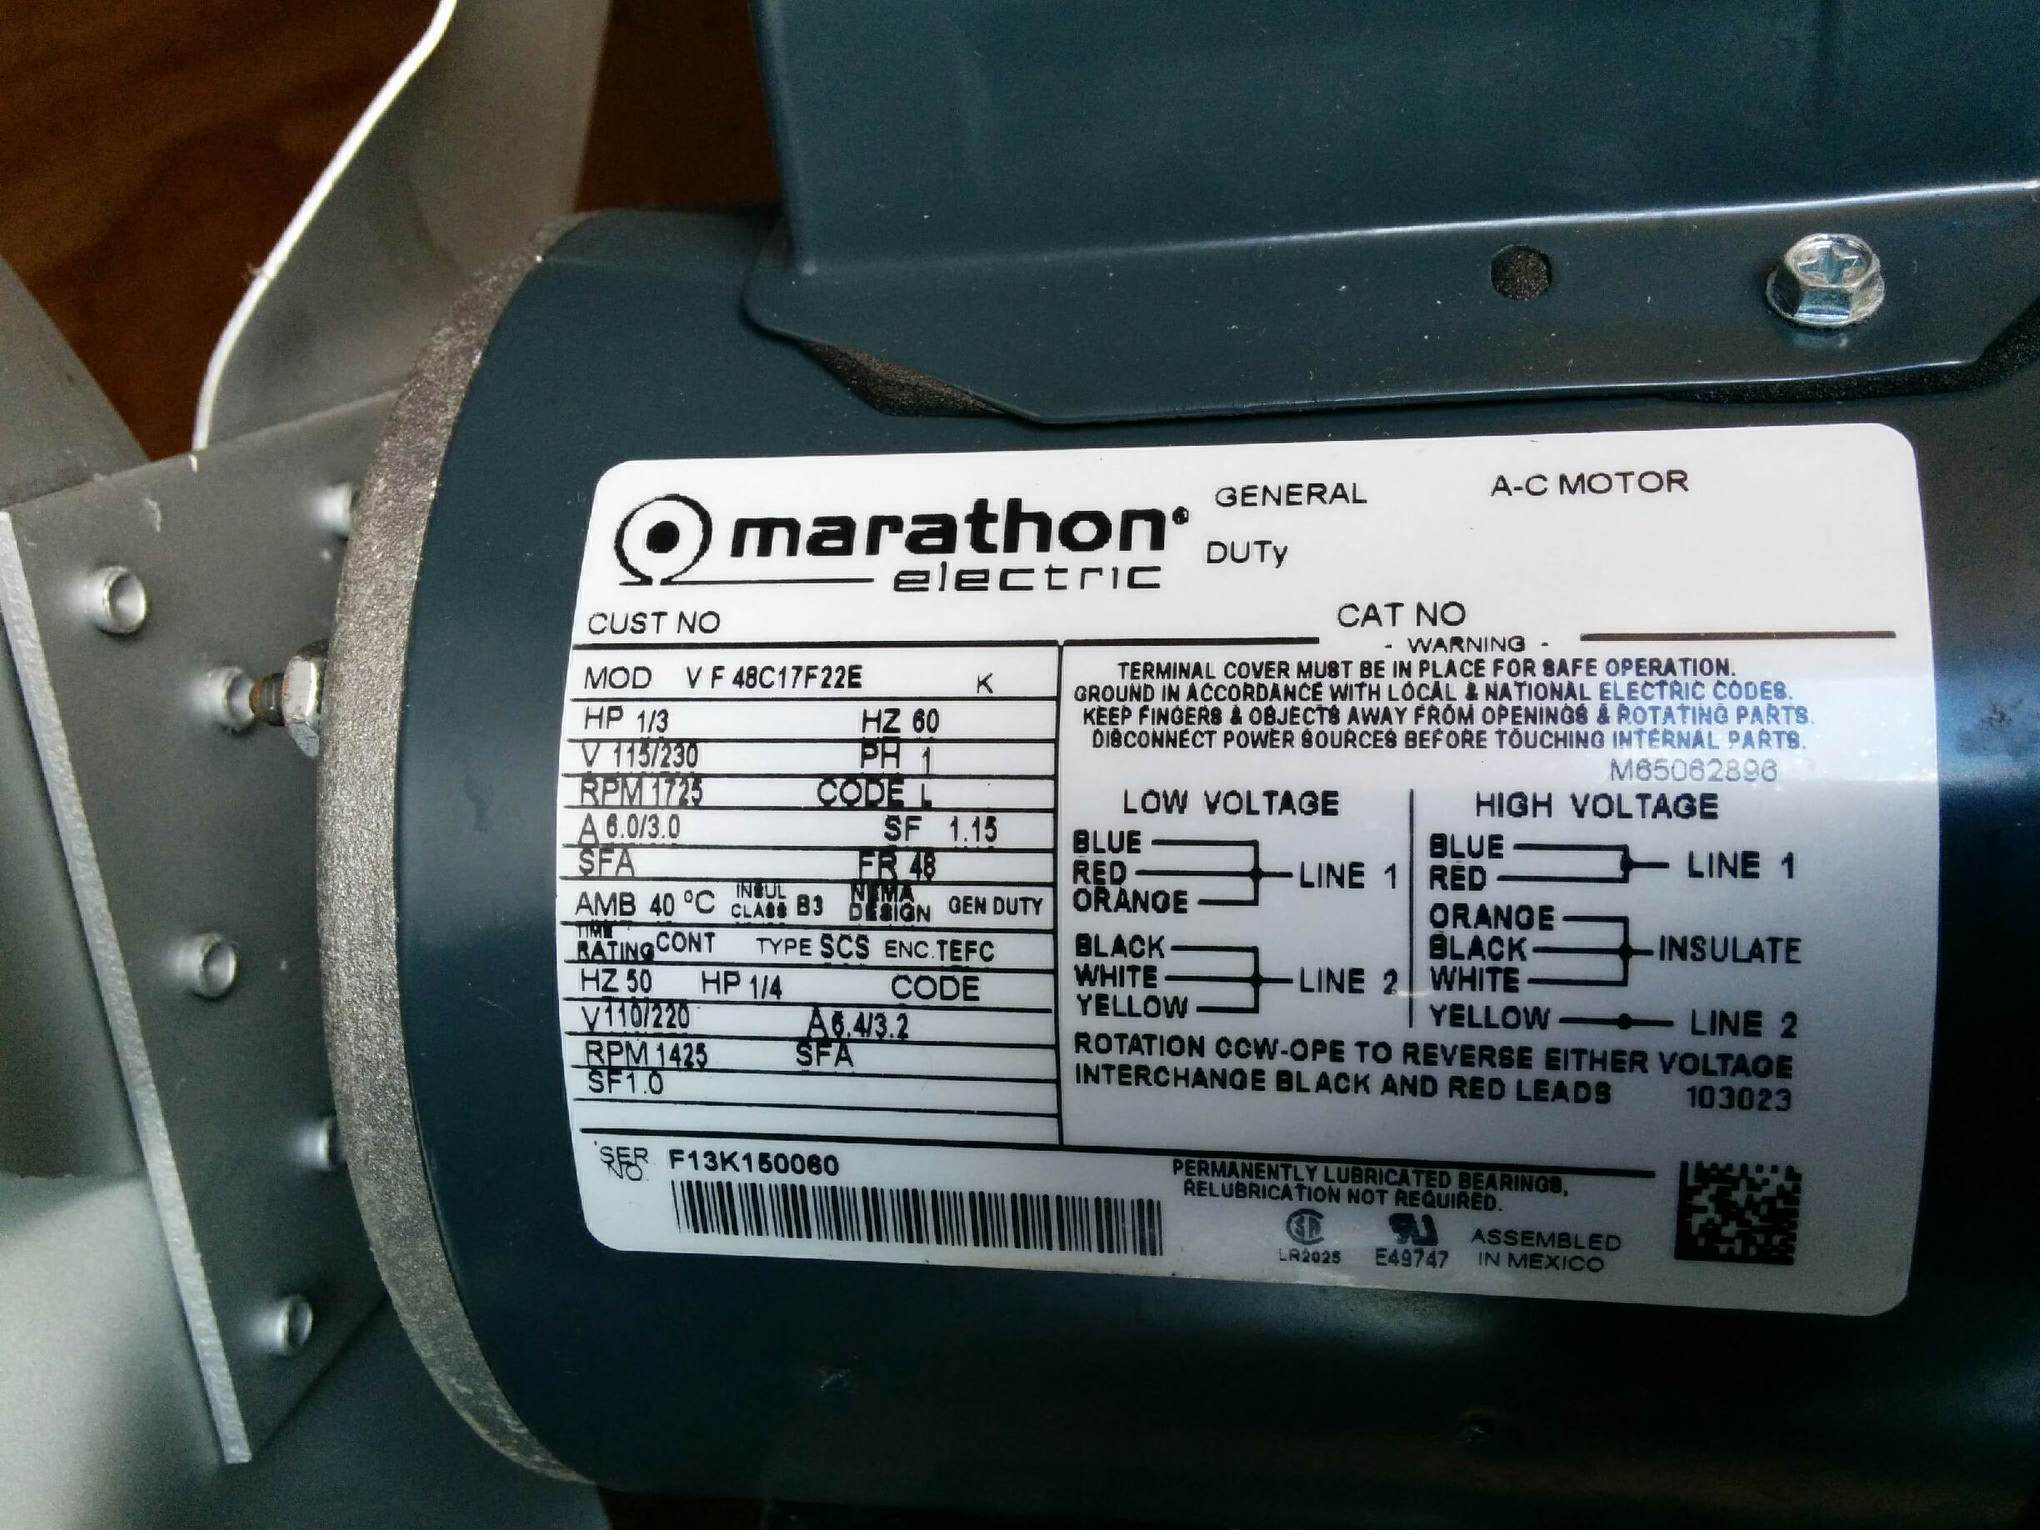 for marathon electric motor single phase wiring diagrams. single phase  marathon motor wiring diagram. single phase marathon motor wiring diagram  gallery. hi i just bought a marathon electric ac motor hp 1  a.2002-acura-tl-radio.info. all rights reserved.